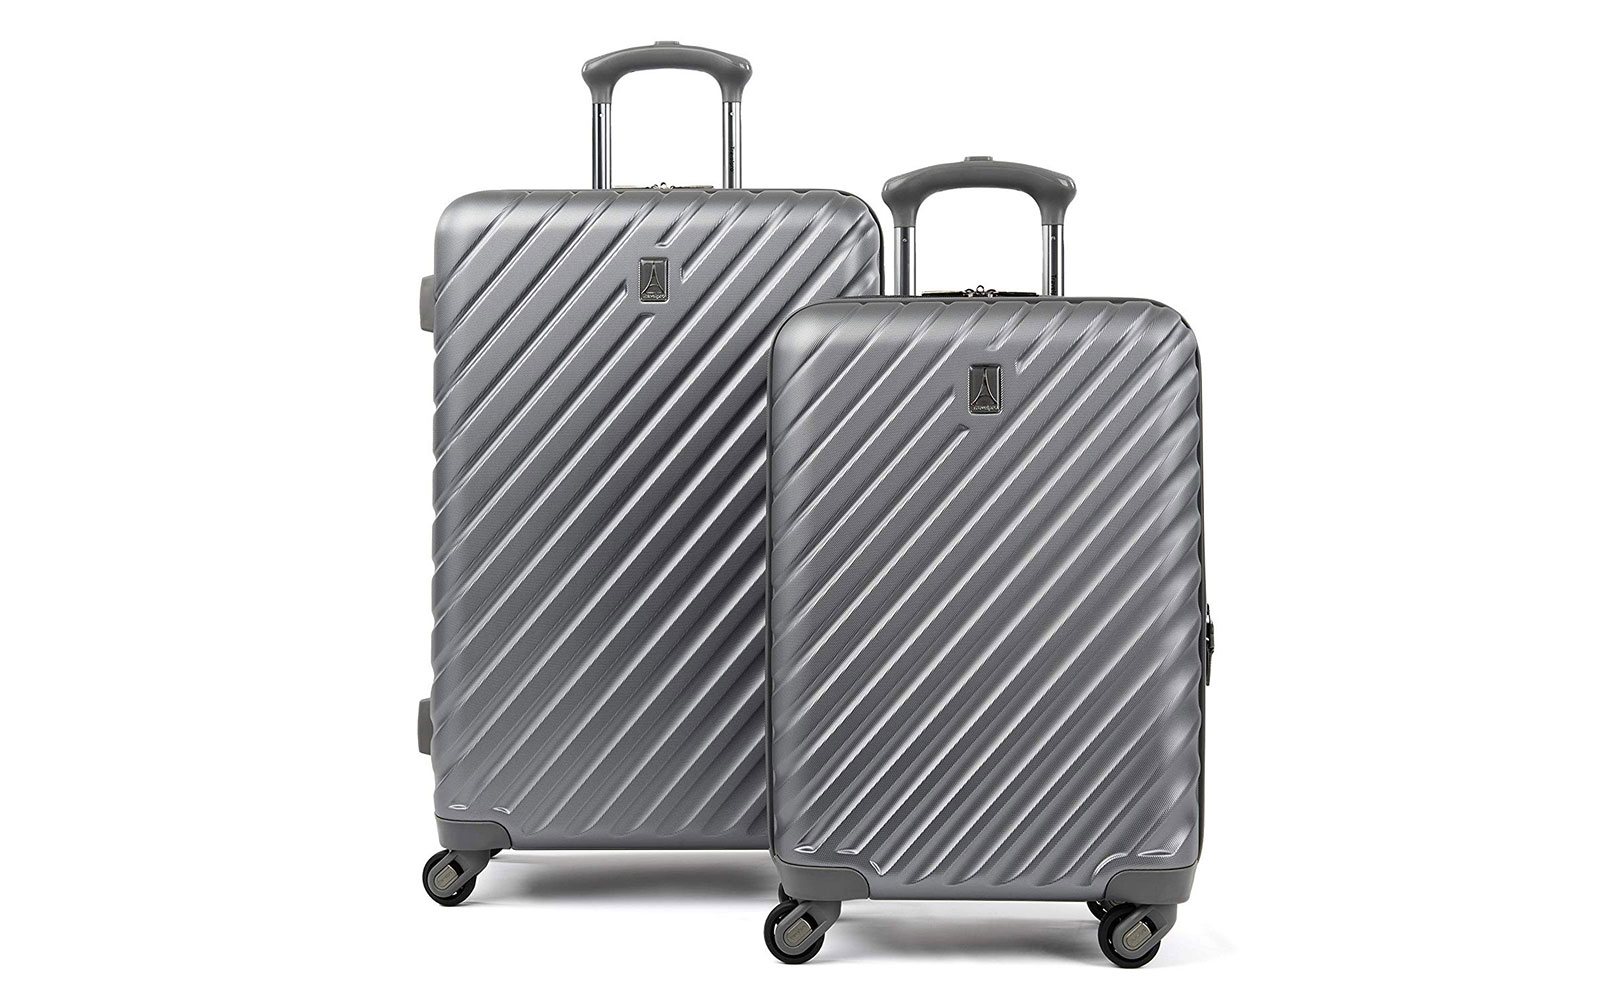 Travelpro Citadel Deluxe Hardside Spinner Luggage Set